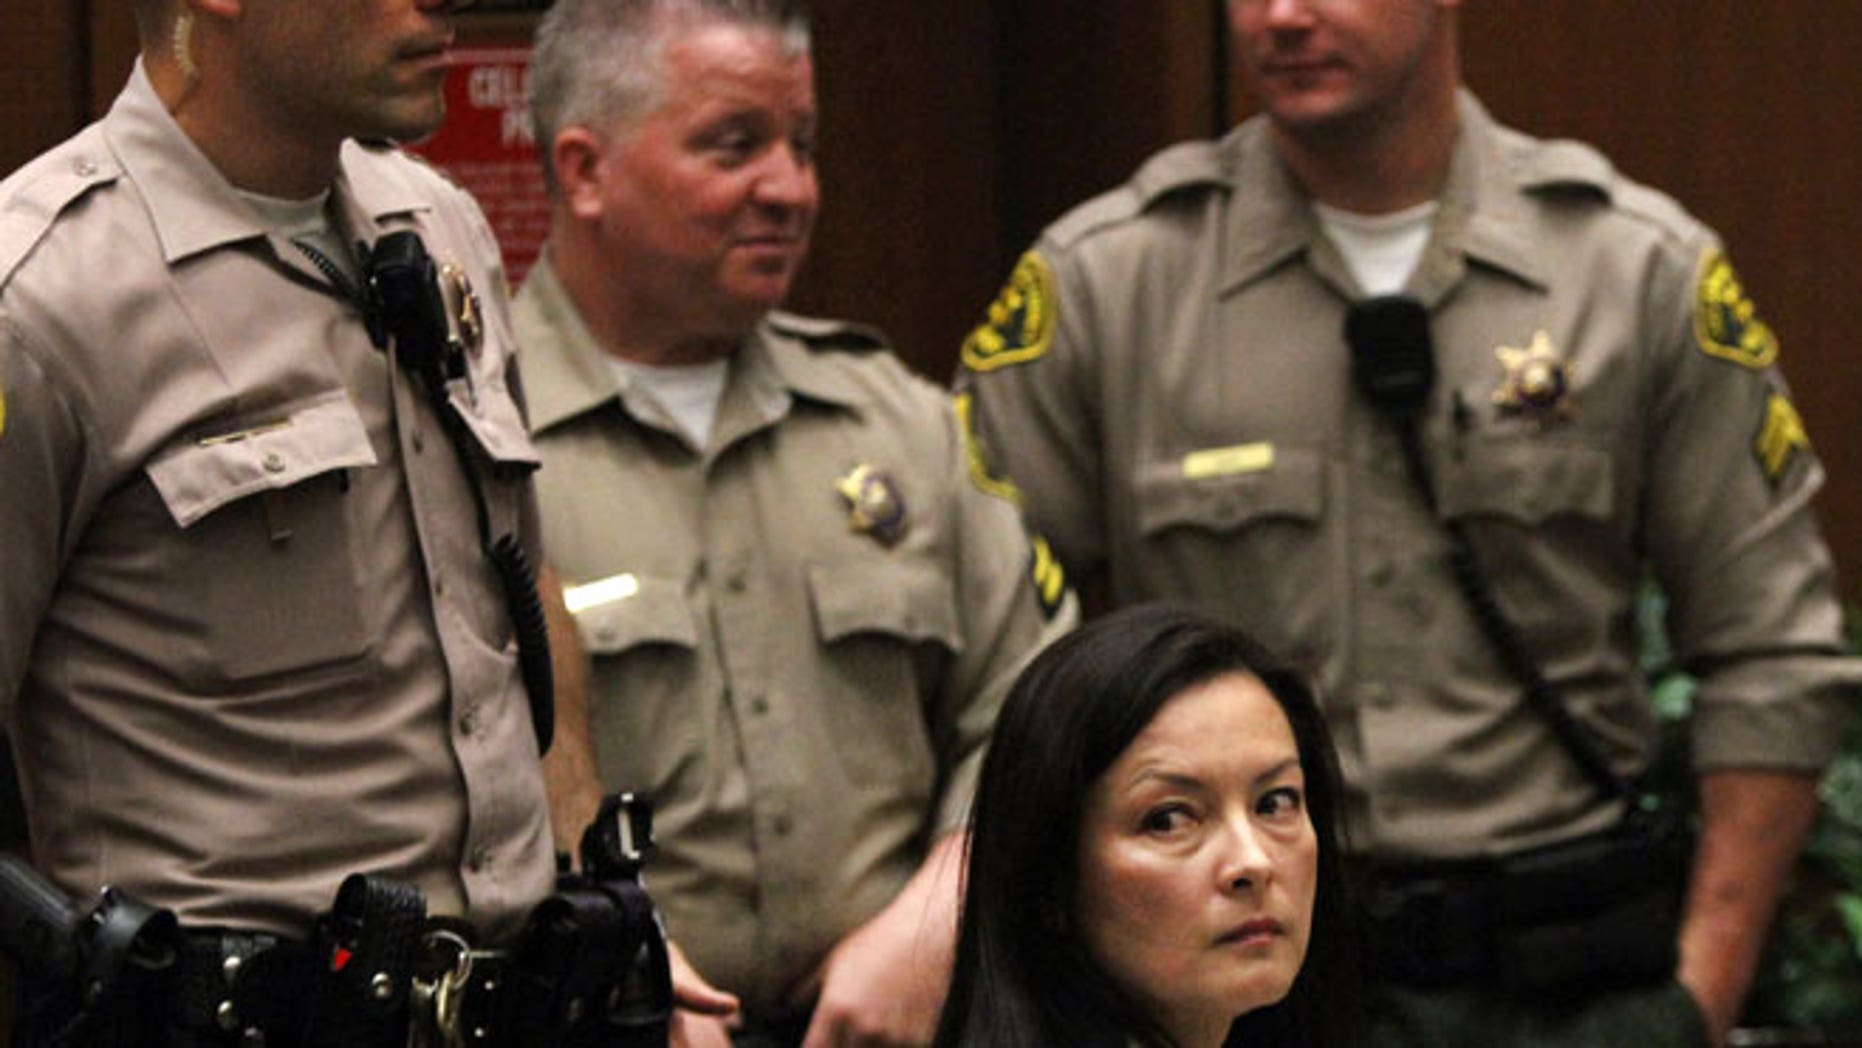 In this May 15, 2013 file photo, Kelly Soo Park looks back at the gallery as opening motions are made in her murder trial. Park was then charged with the 2008 killing of aspiring model and actress Juliana Redding. Los Angeles prosecutors say Park and Dr. Munir Uwaydah are both charged in a conspiracy to fraudulently bill insurance companies $150 million.